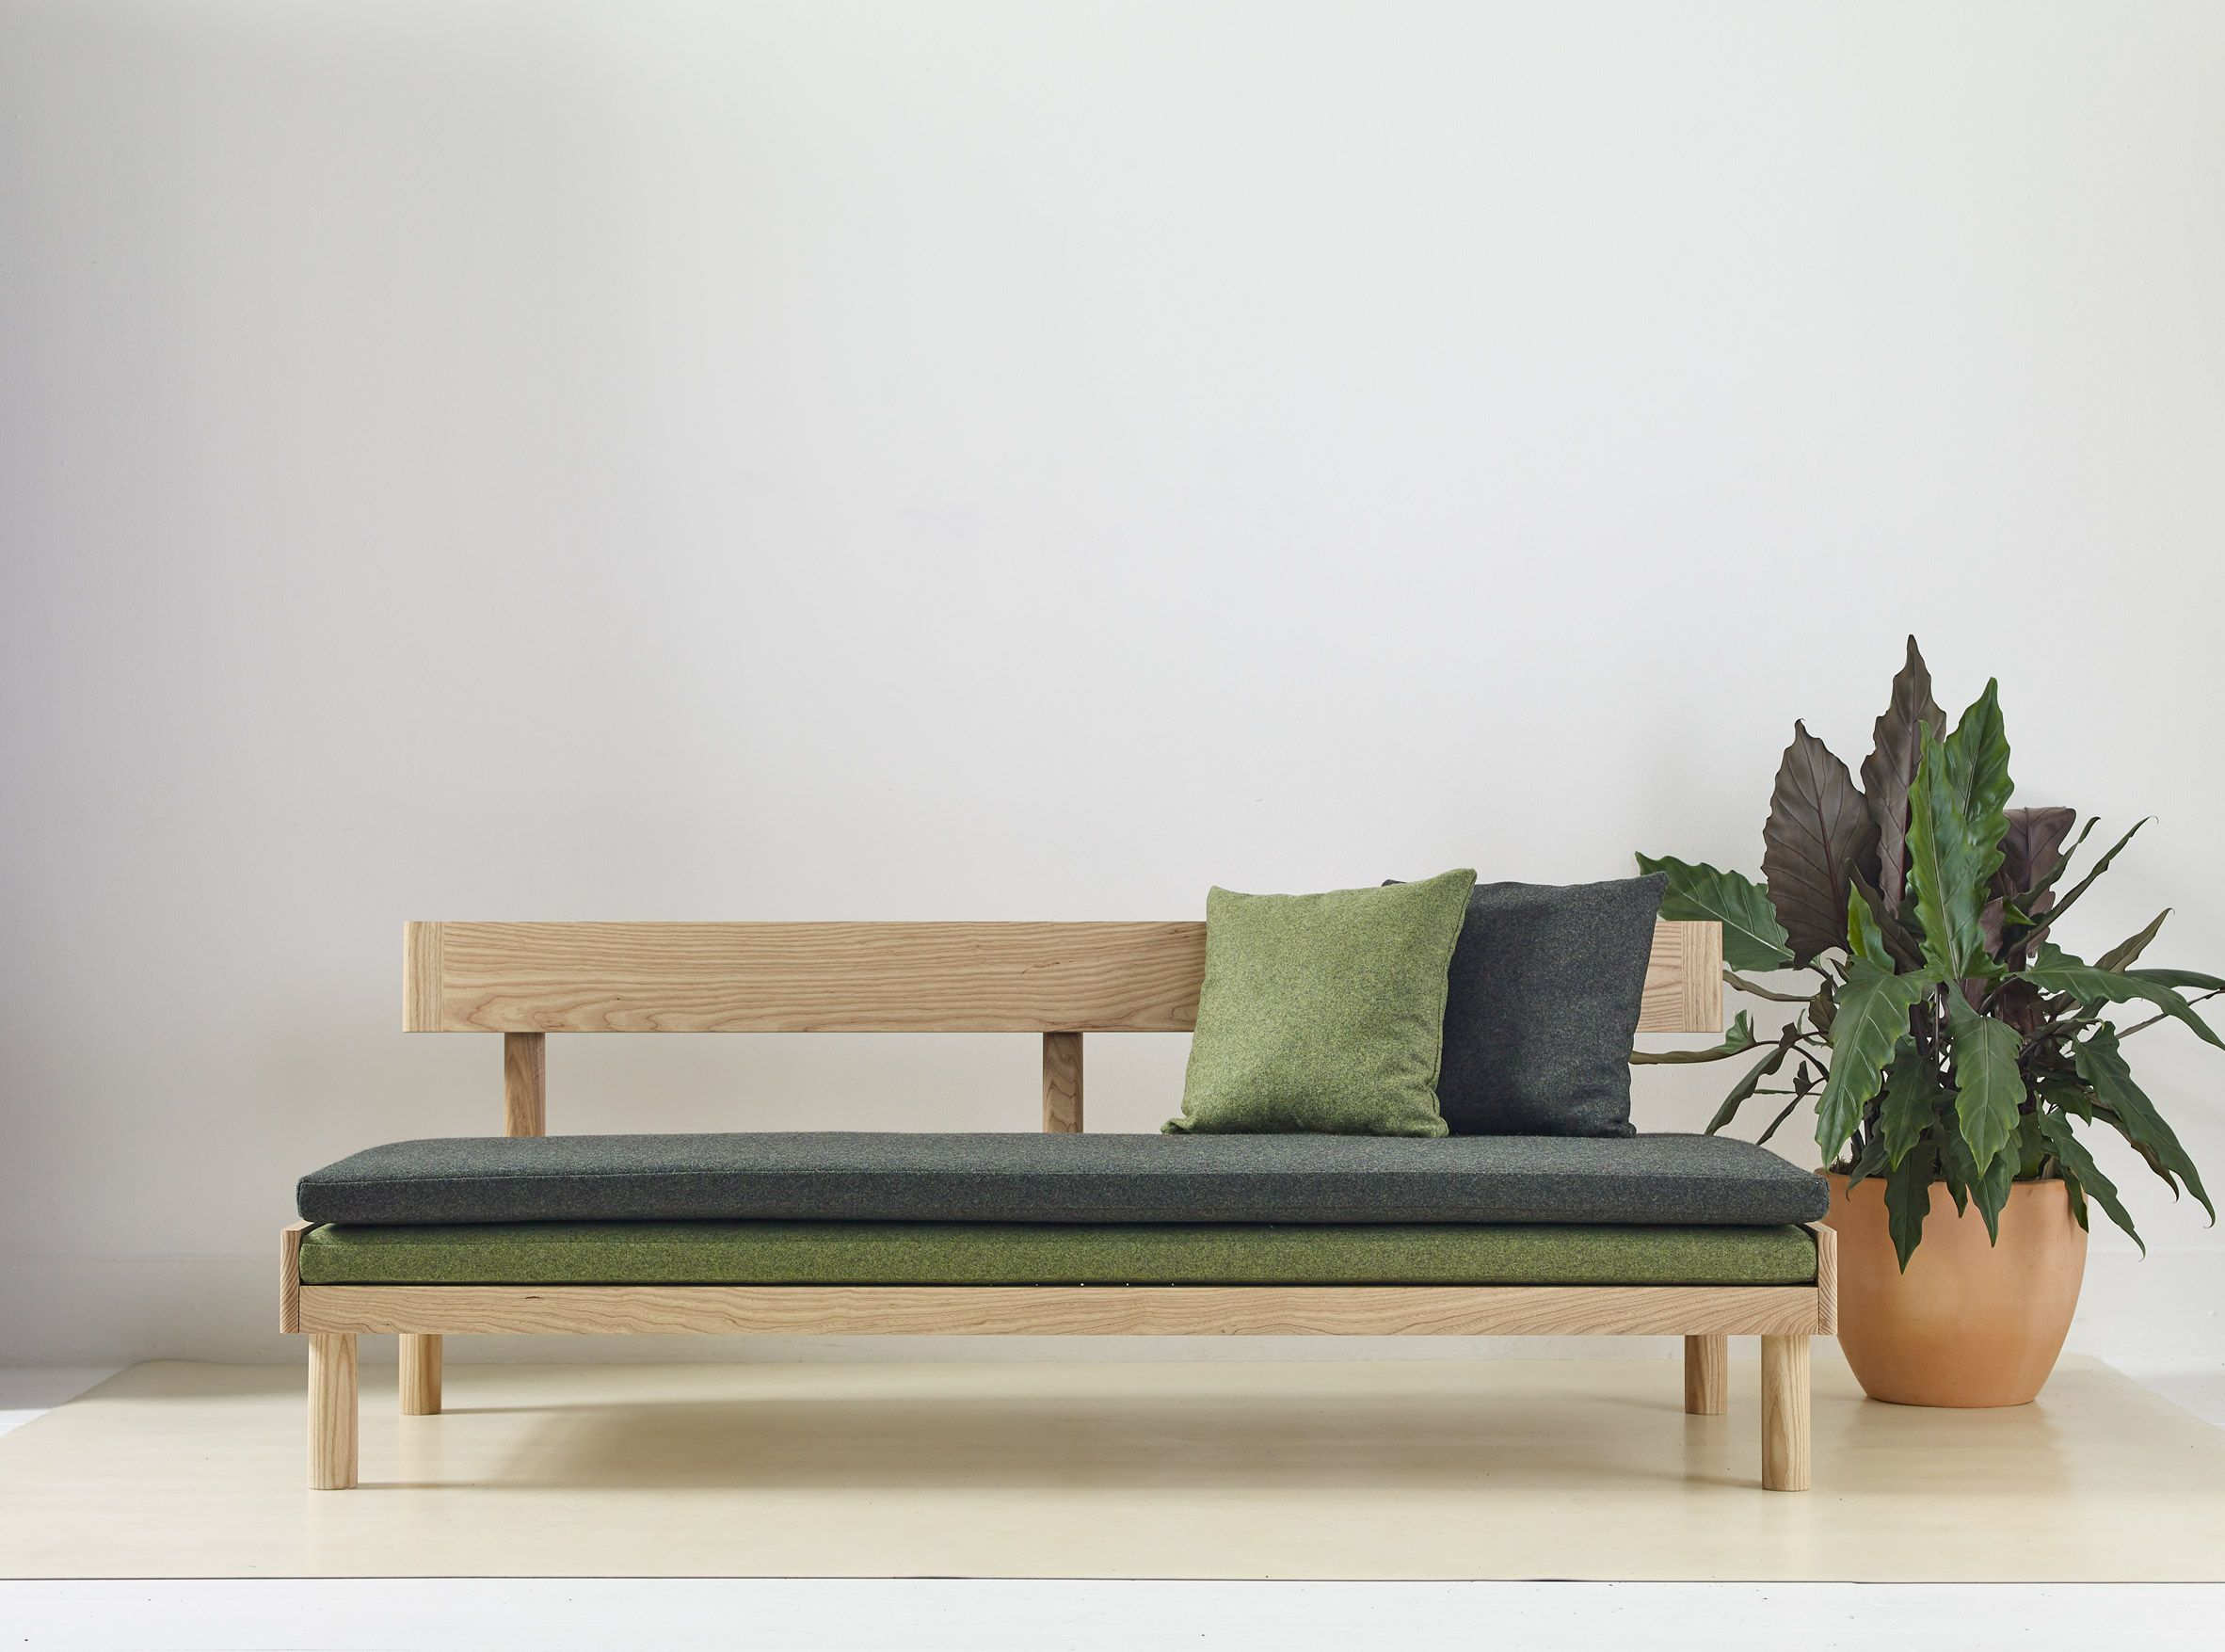 Bettsofa Diy Design For The Natural Home By Another Country And Ekkist Chairs